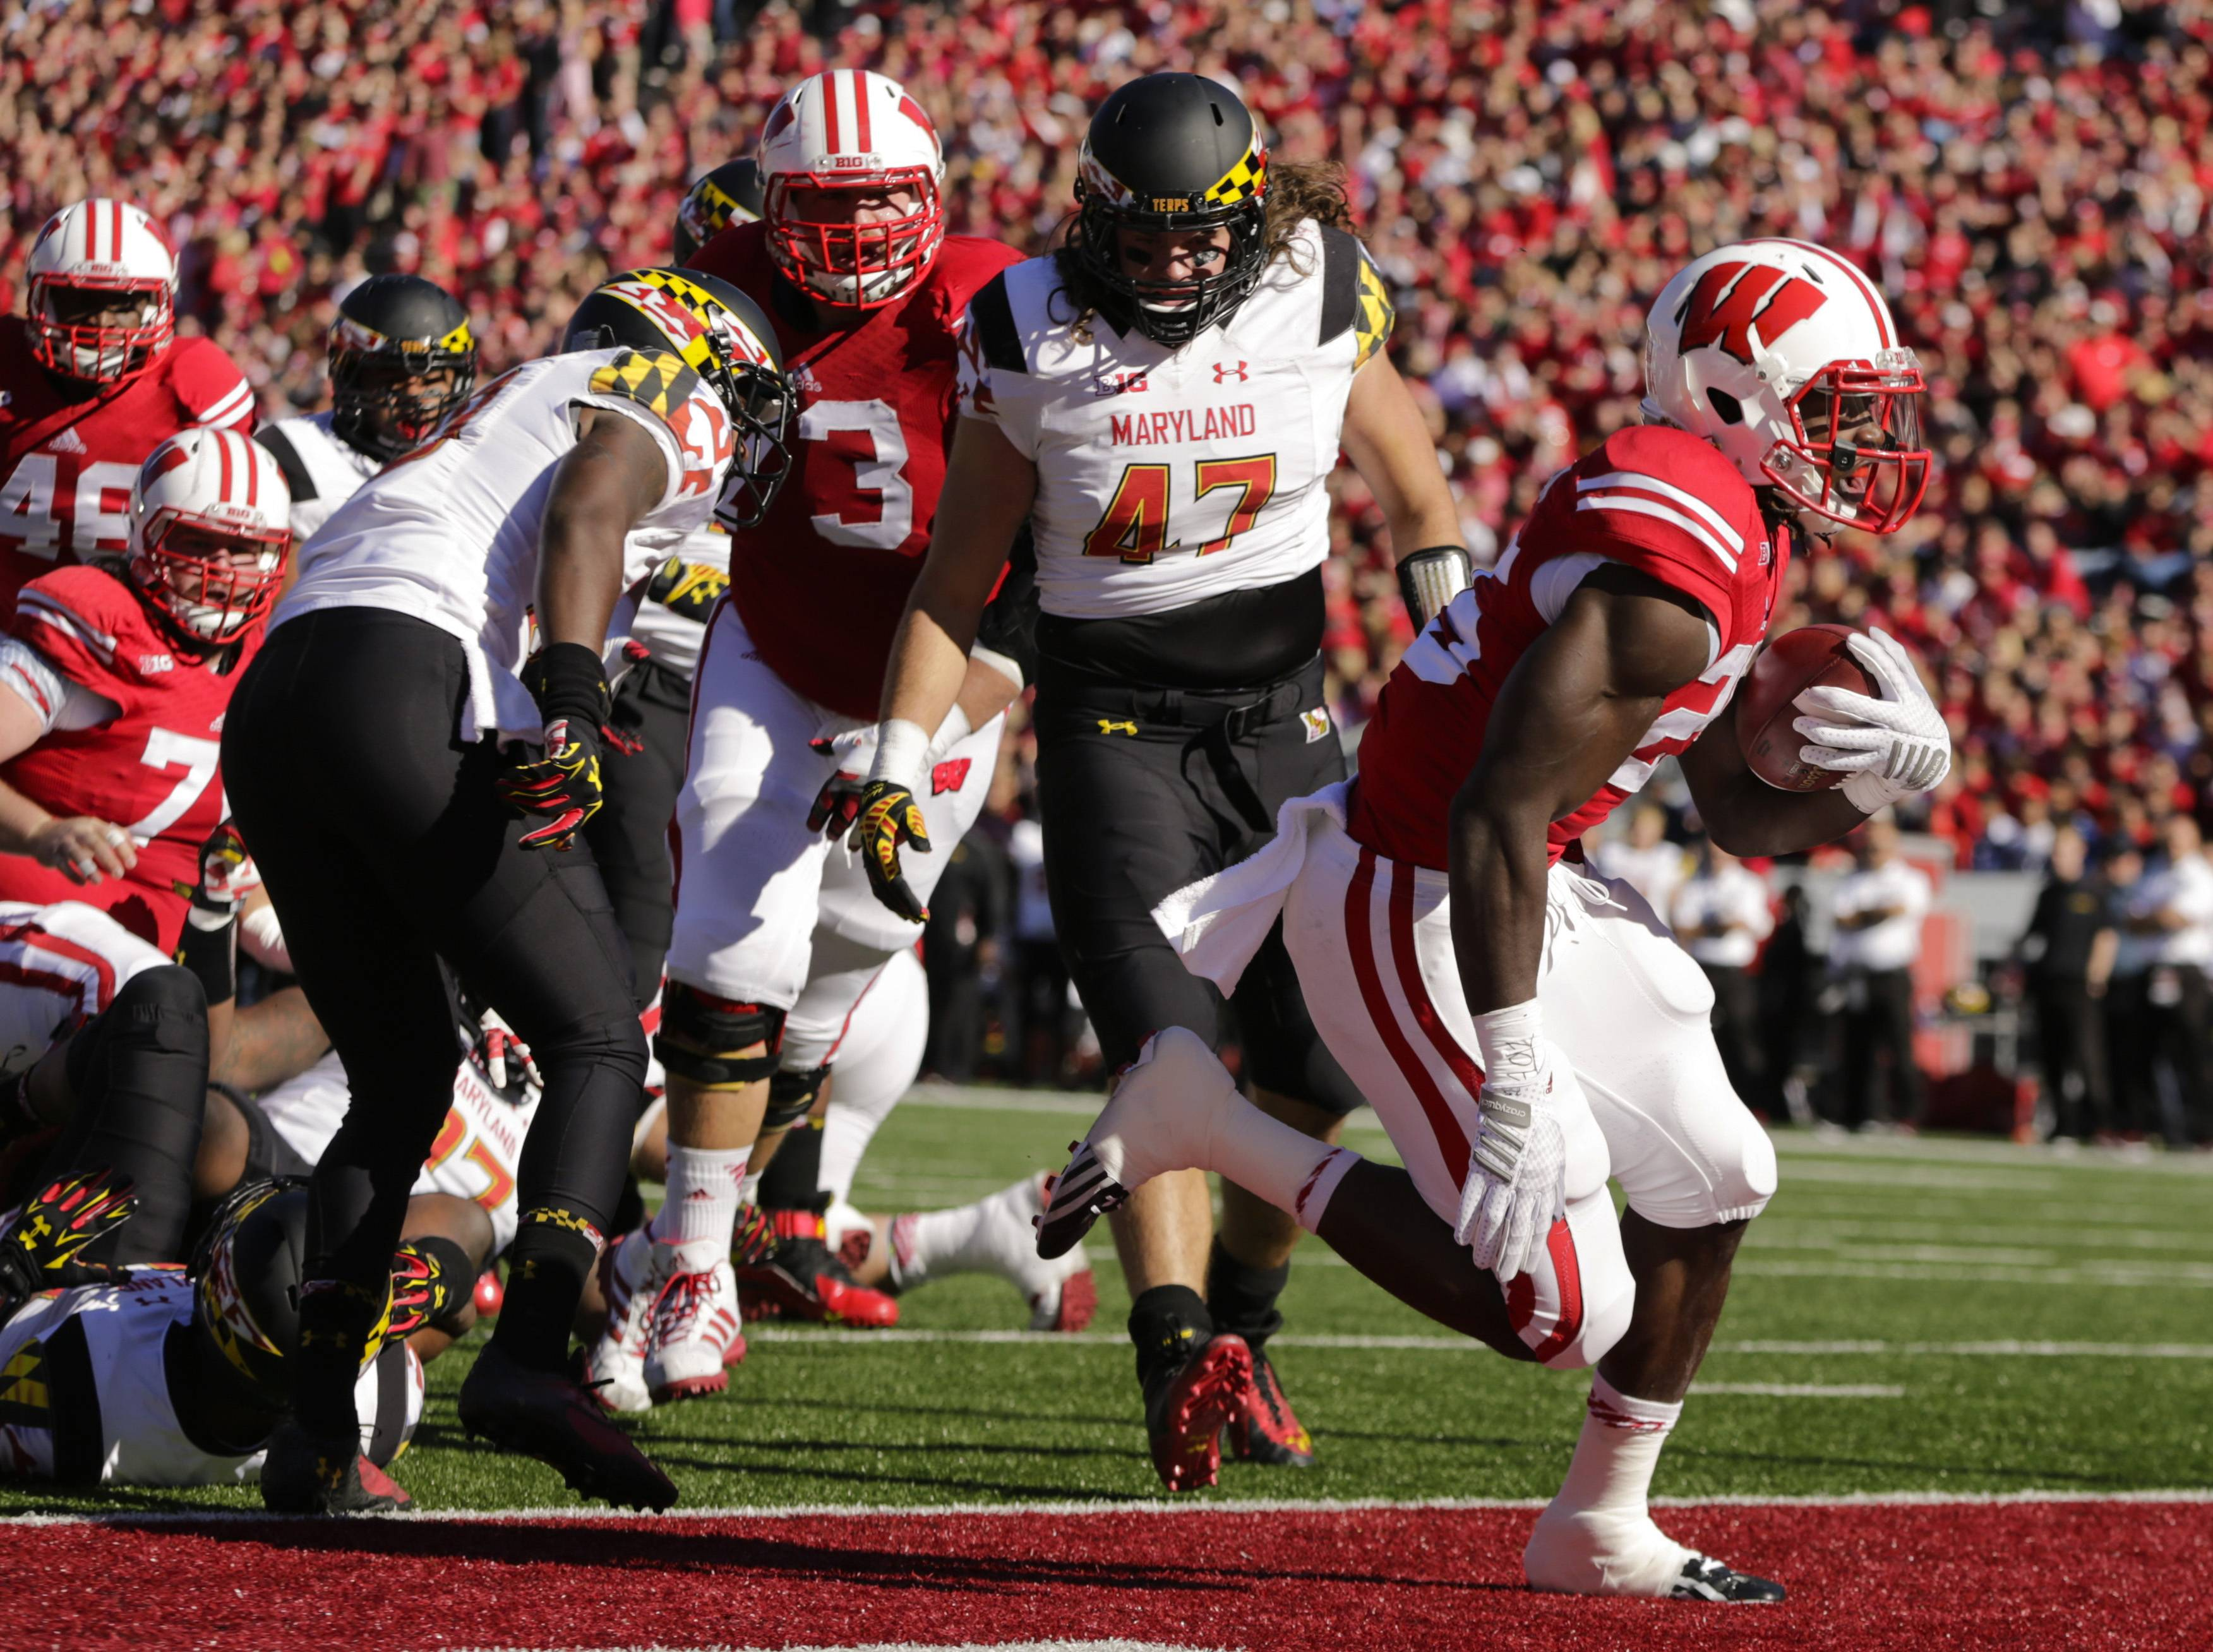 Wisconsin running back Melvin Gordon (25) scores a touchdown against Maryland defensive back Anthony Nixon, left, and Cole Farrand (47) during the first half Saturday in Madison, Wis.